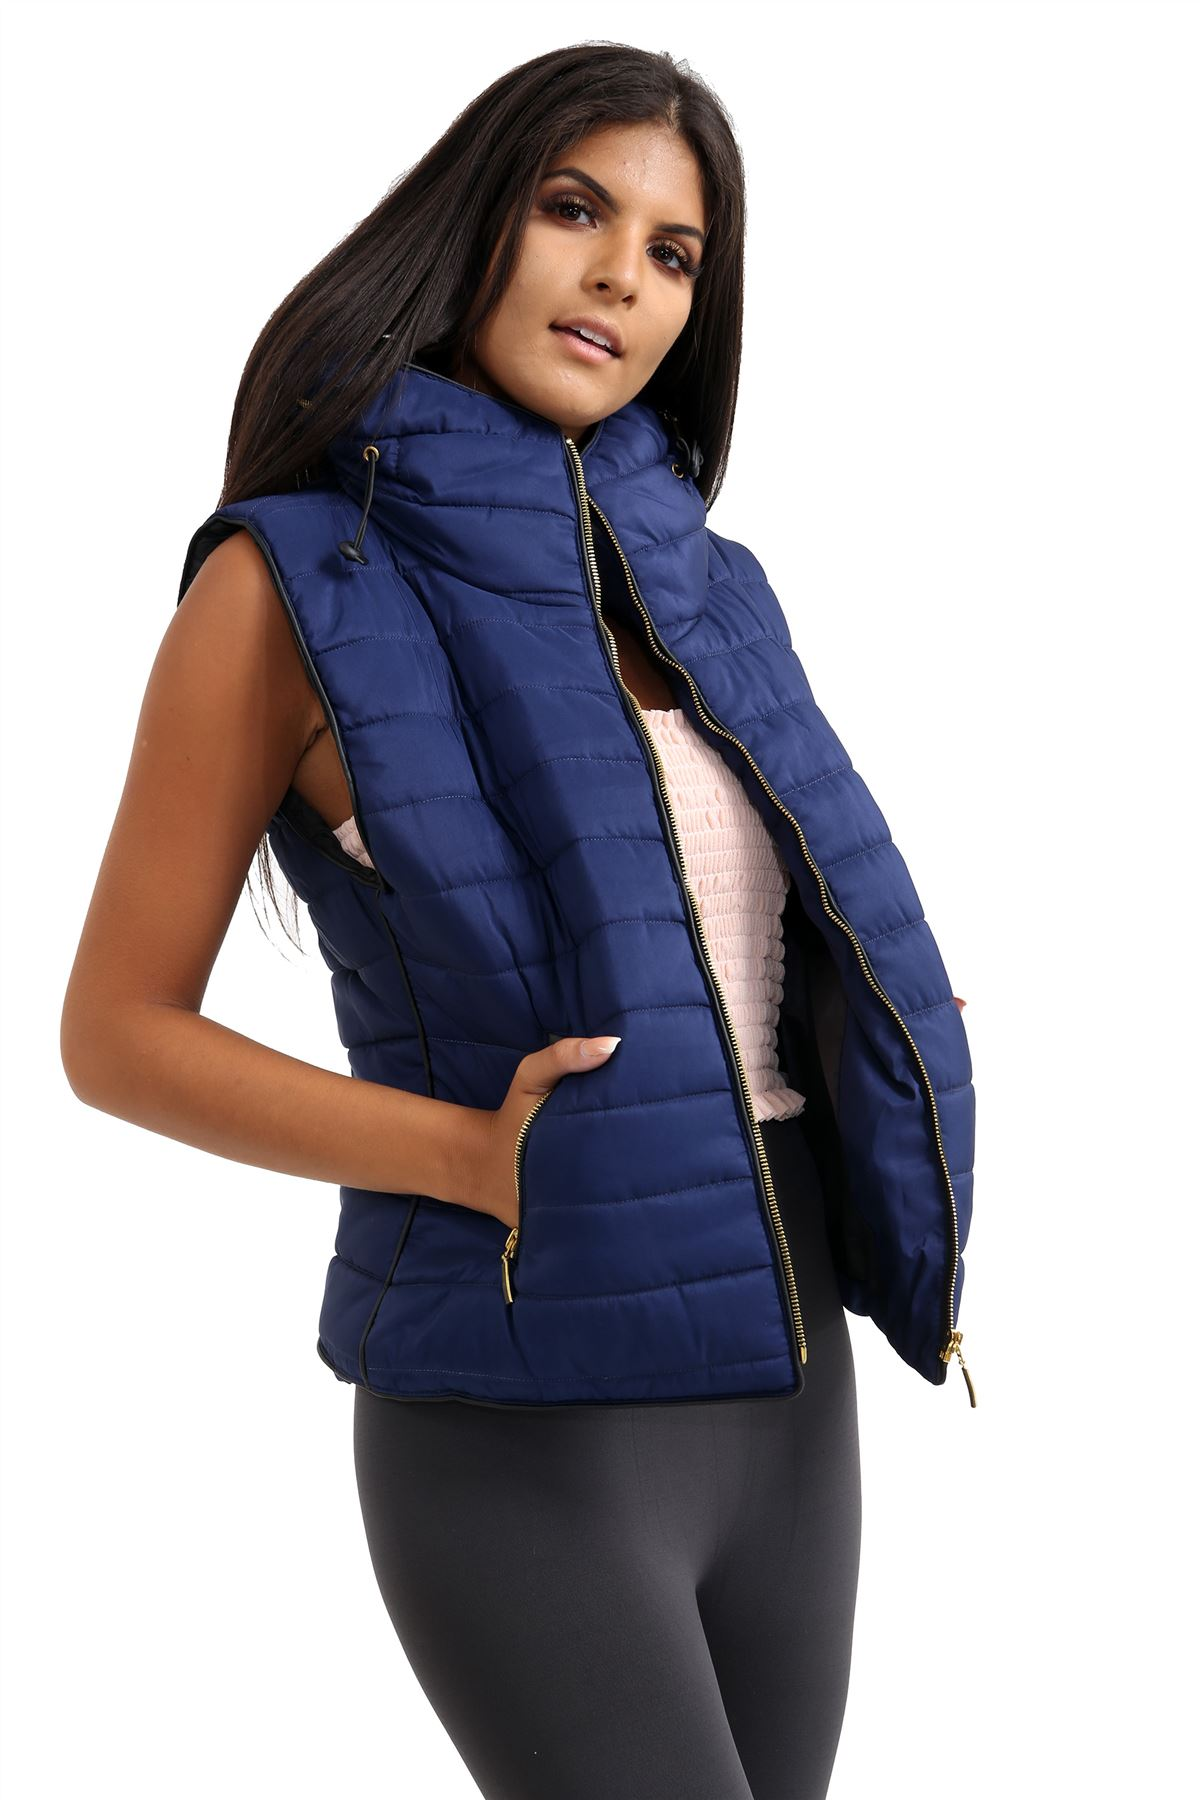 Ladies-Gilet-Quilted-Padded-Body-Warmer-Sleeveless-Fur-Collar-Puffer-Jacket-Coat thumbnail 16